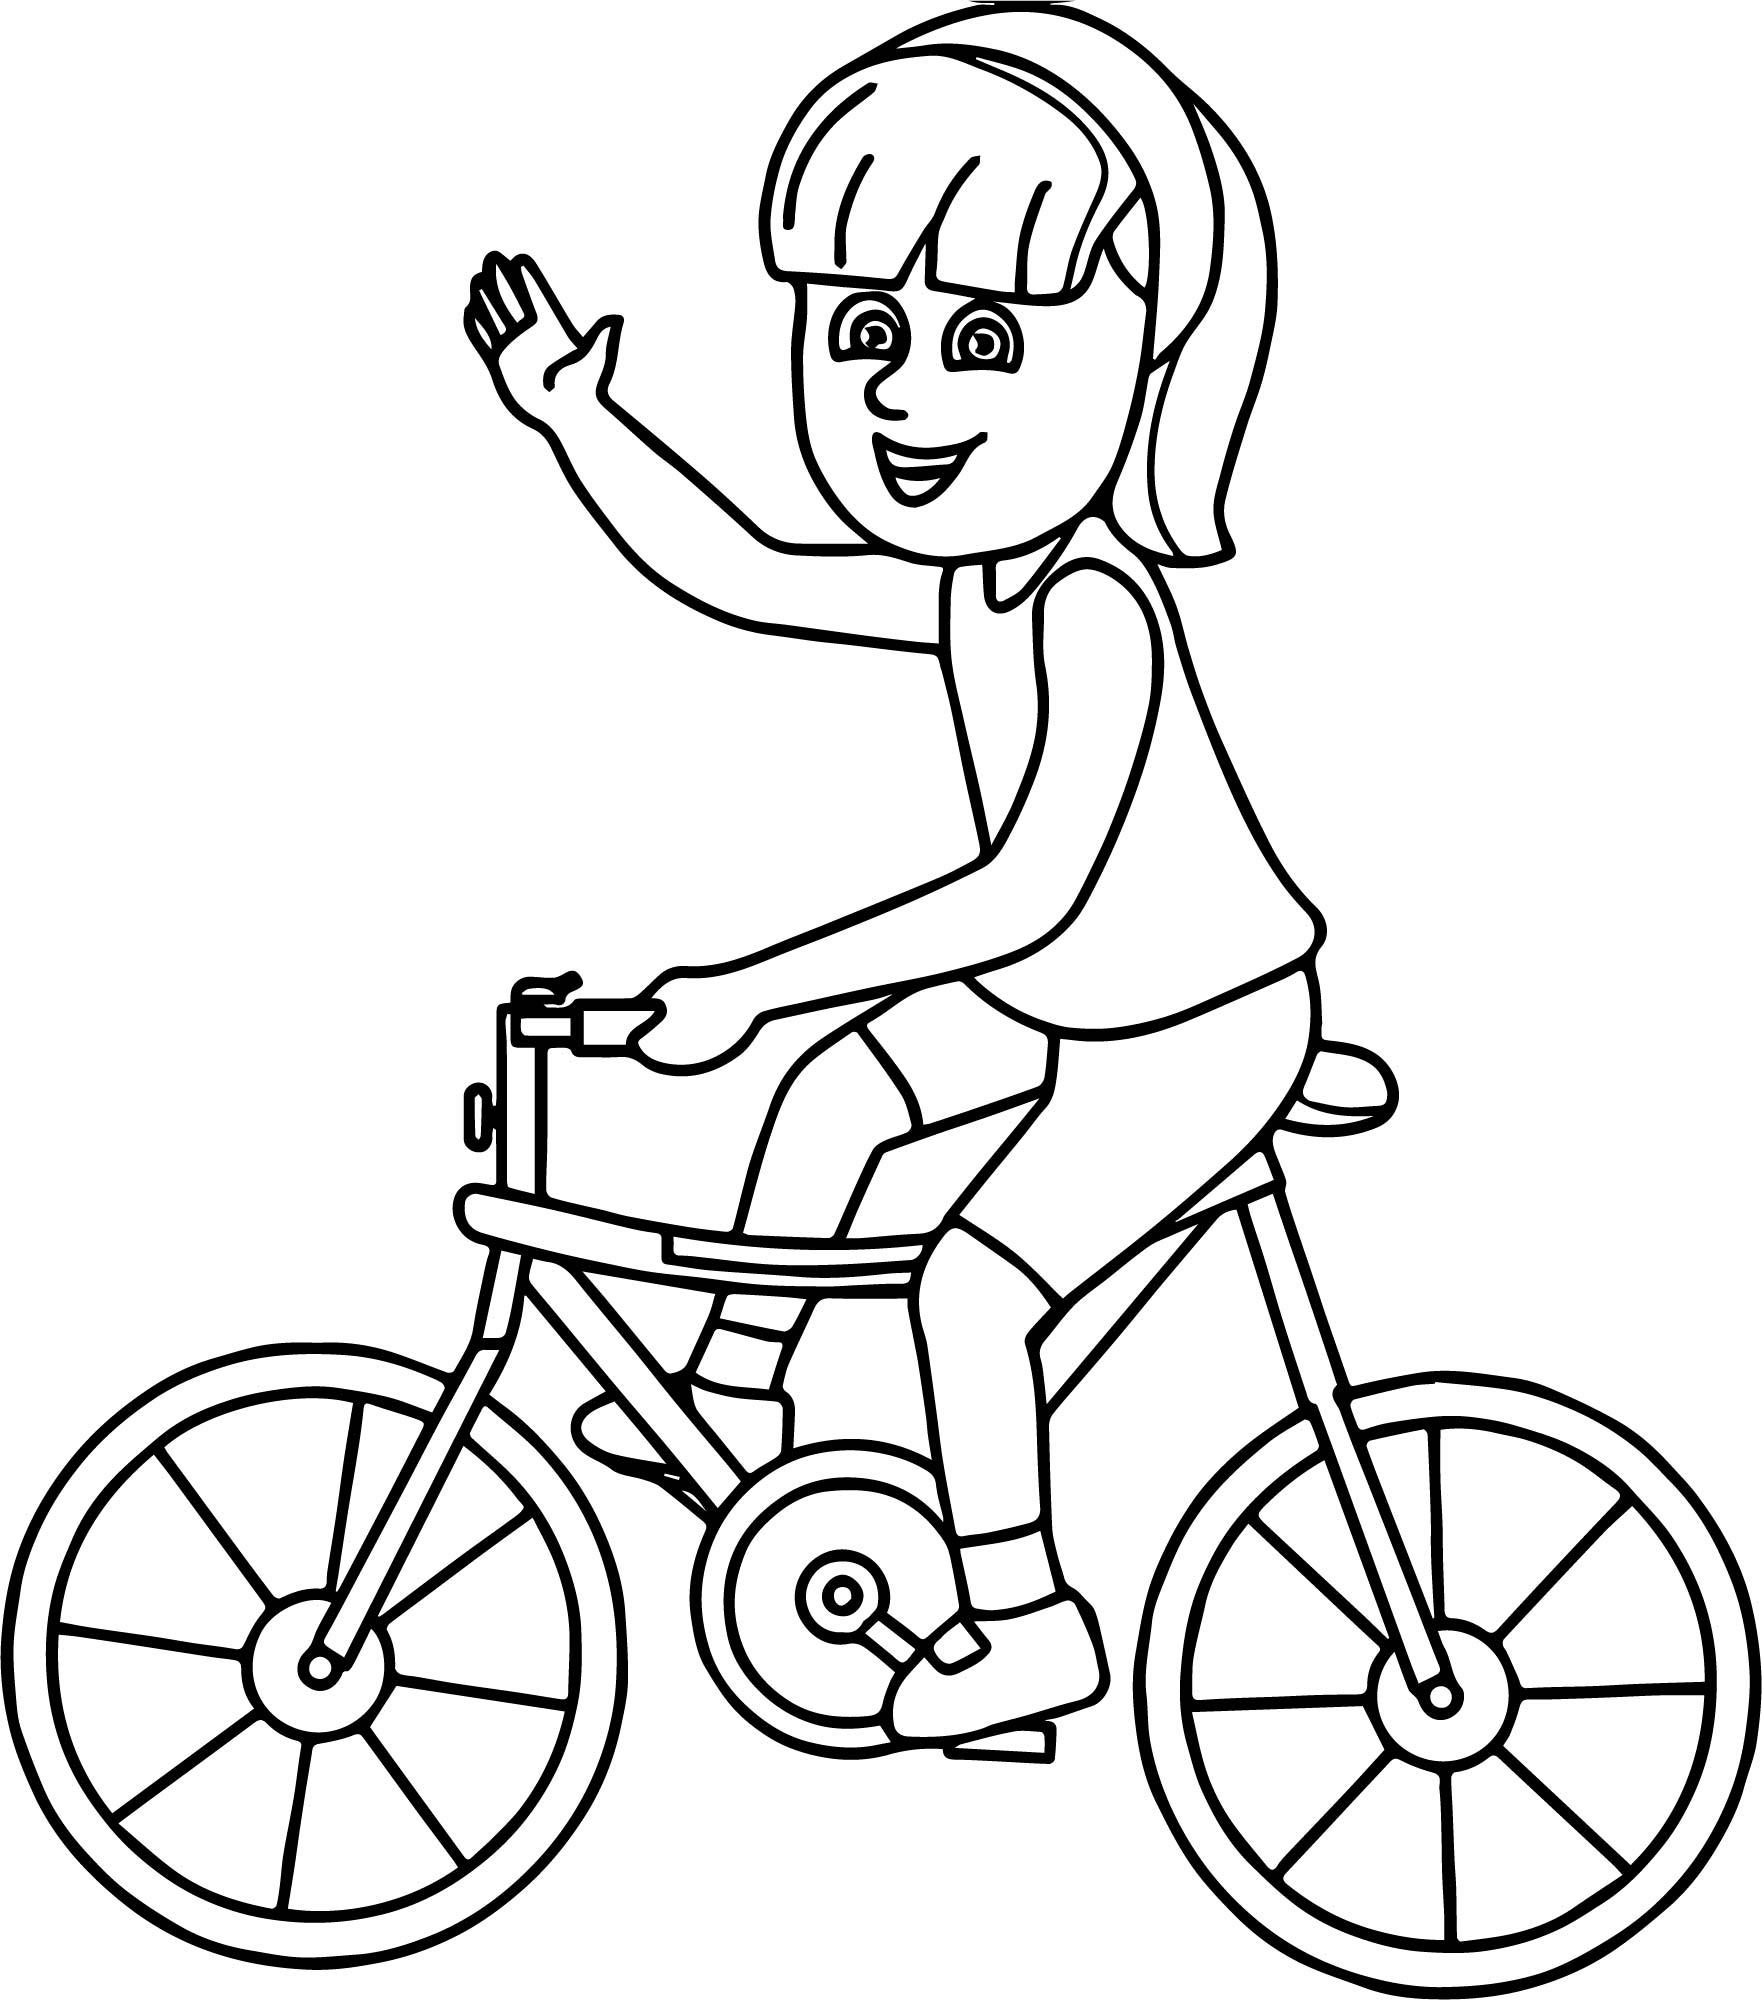 Riding girl on bicycle coloring page for Coloring pages bikes